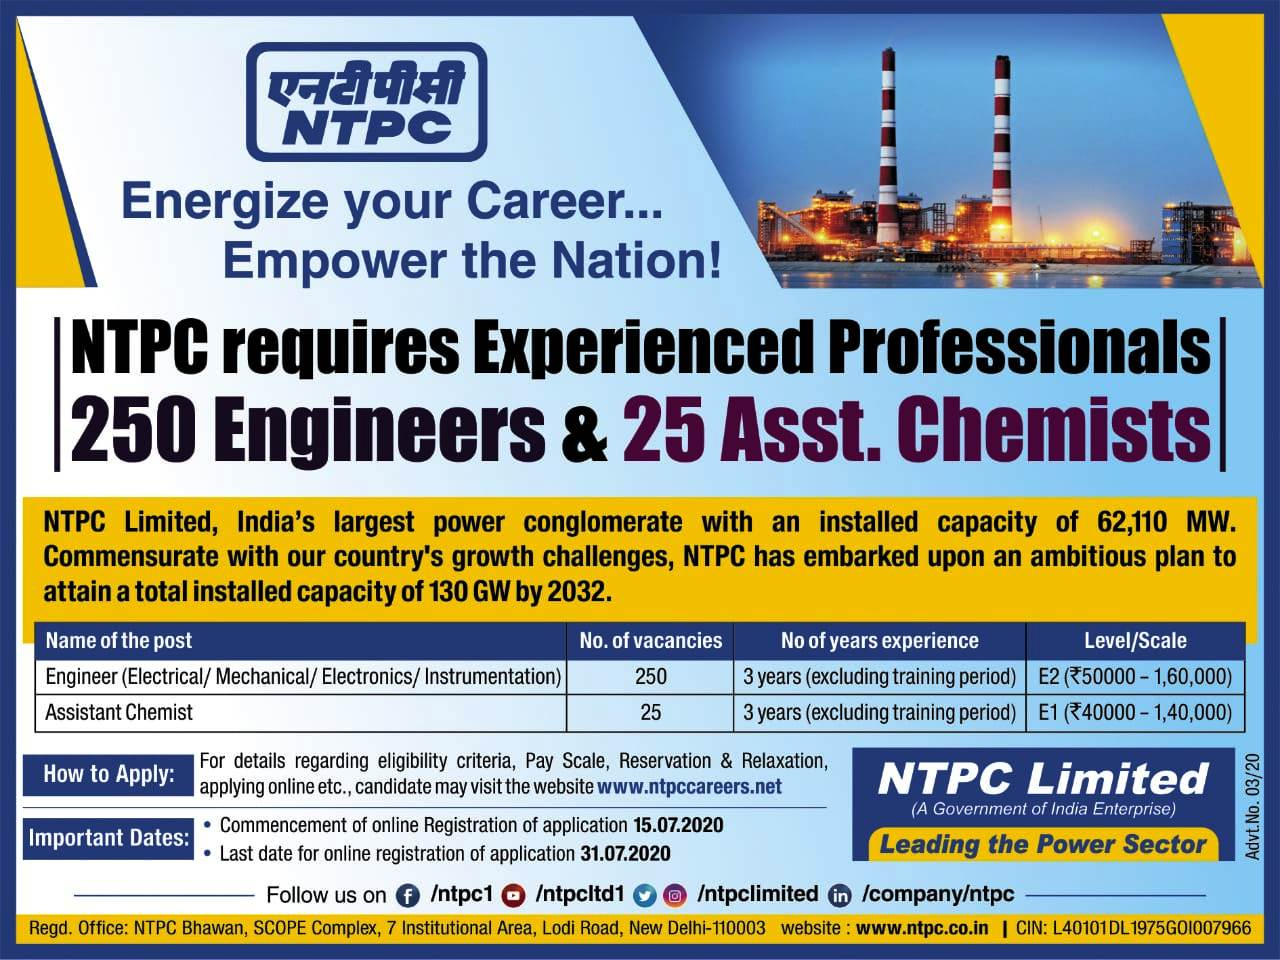 NTPC Limited Recruitment 2020: Apply Online For 275 Engineer & Chemist Posts